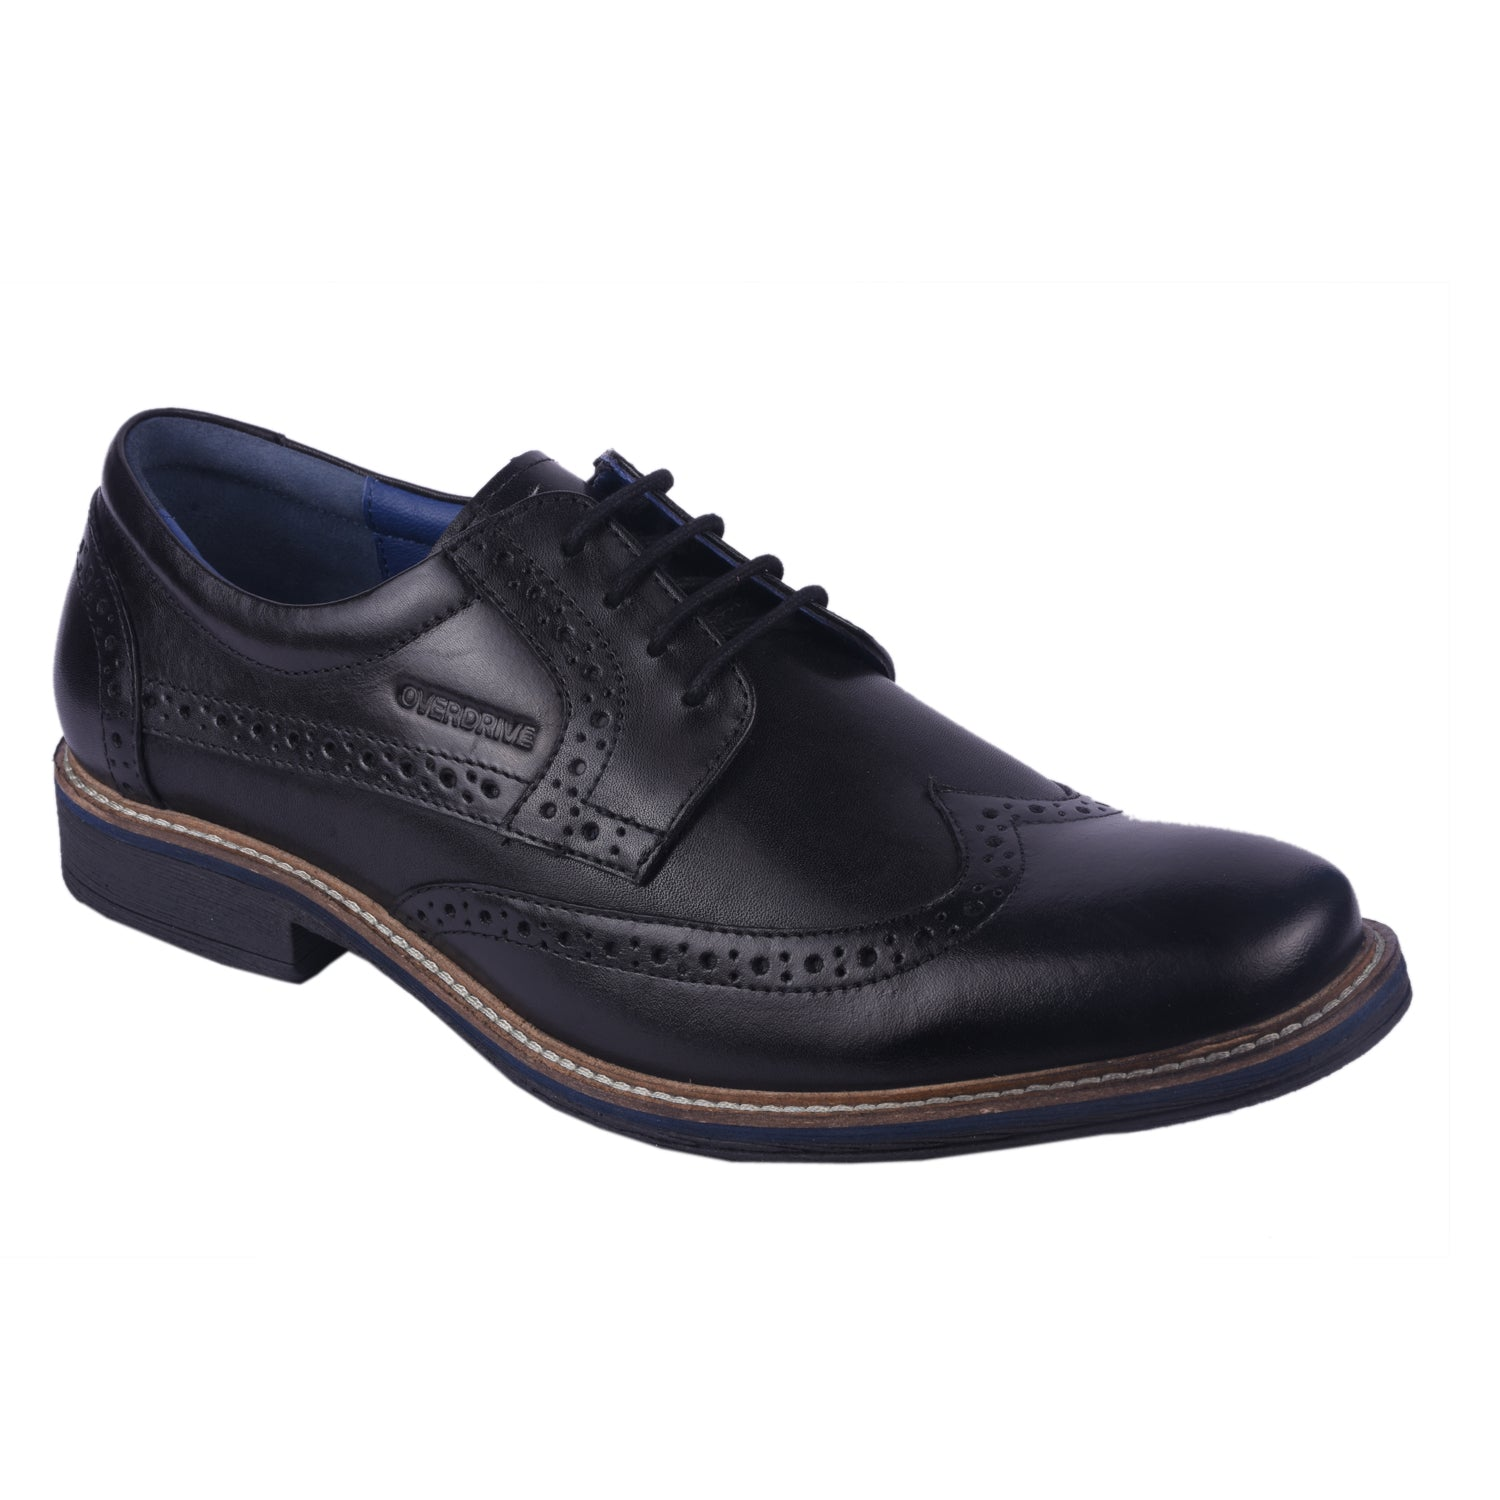 Overdrive Black Brogue Shoes